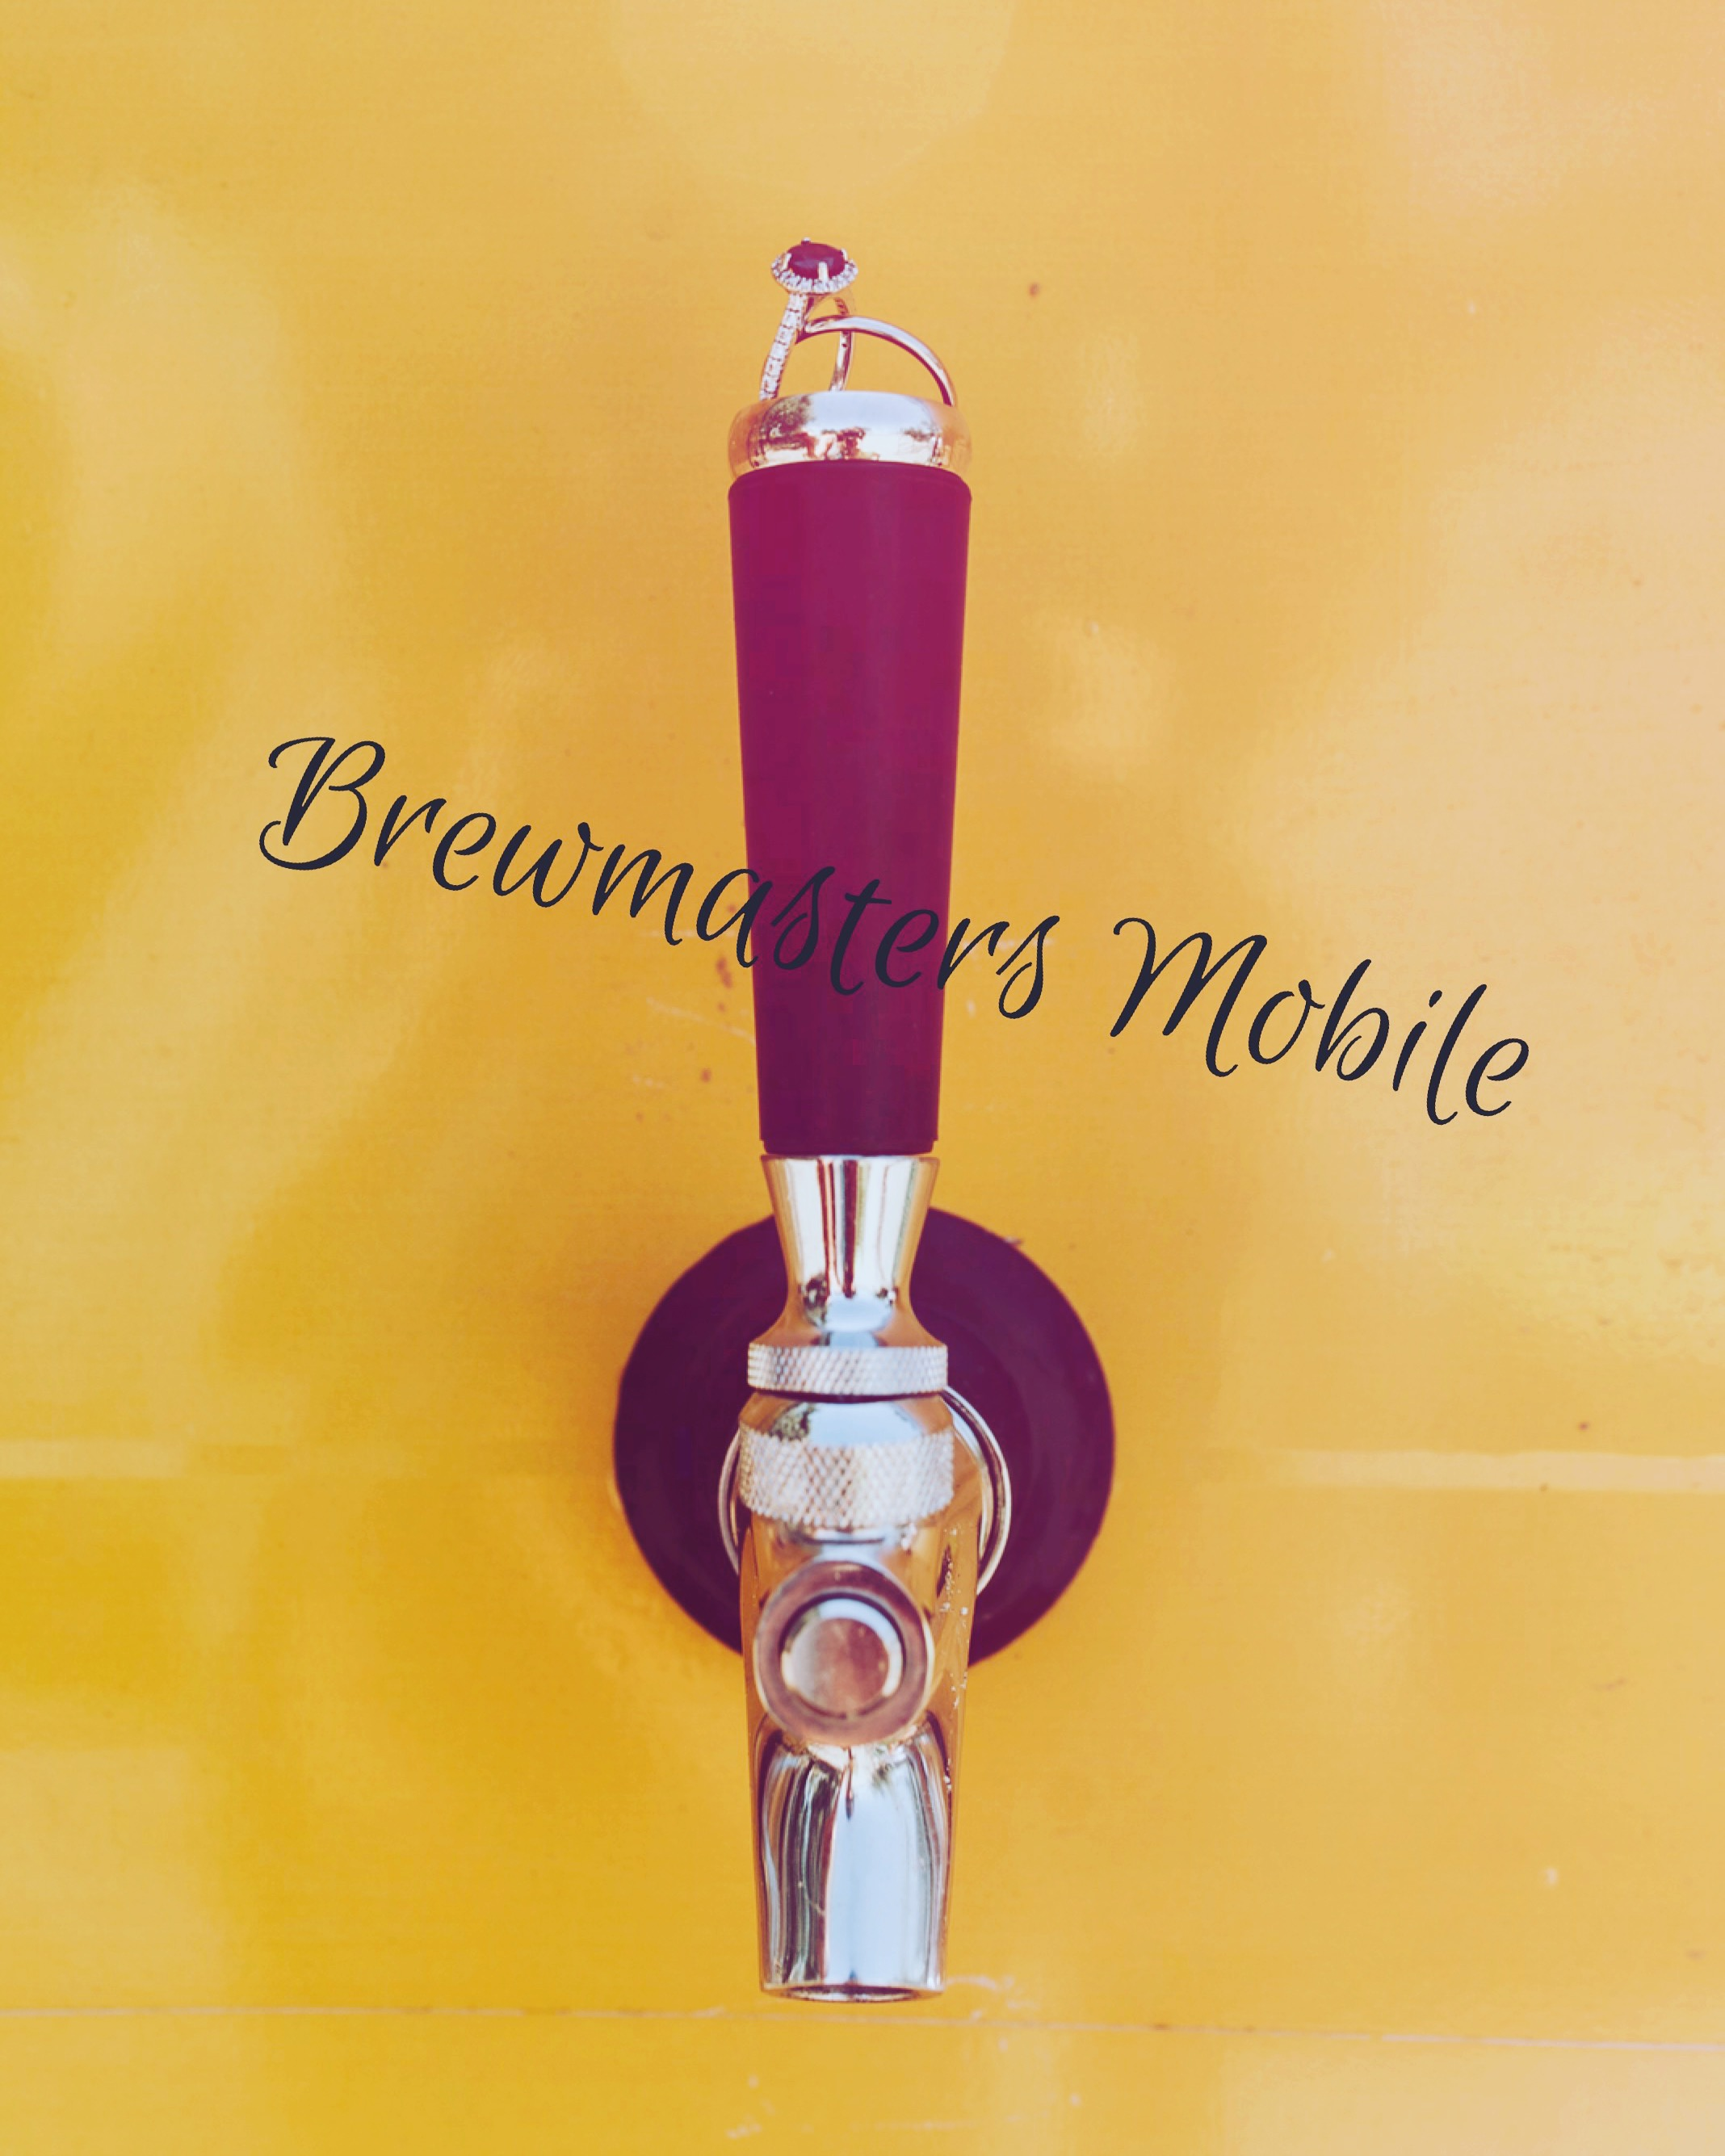 Brewmasters Mobile Bar Services, North Carolina